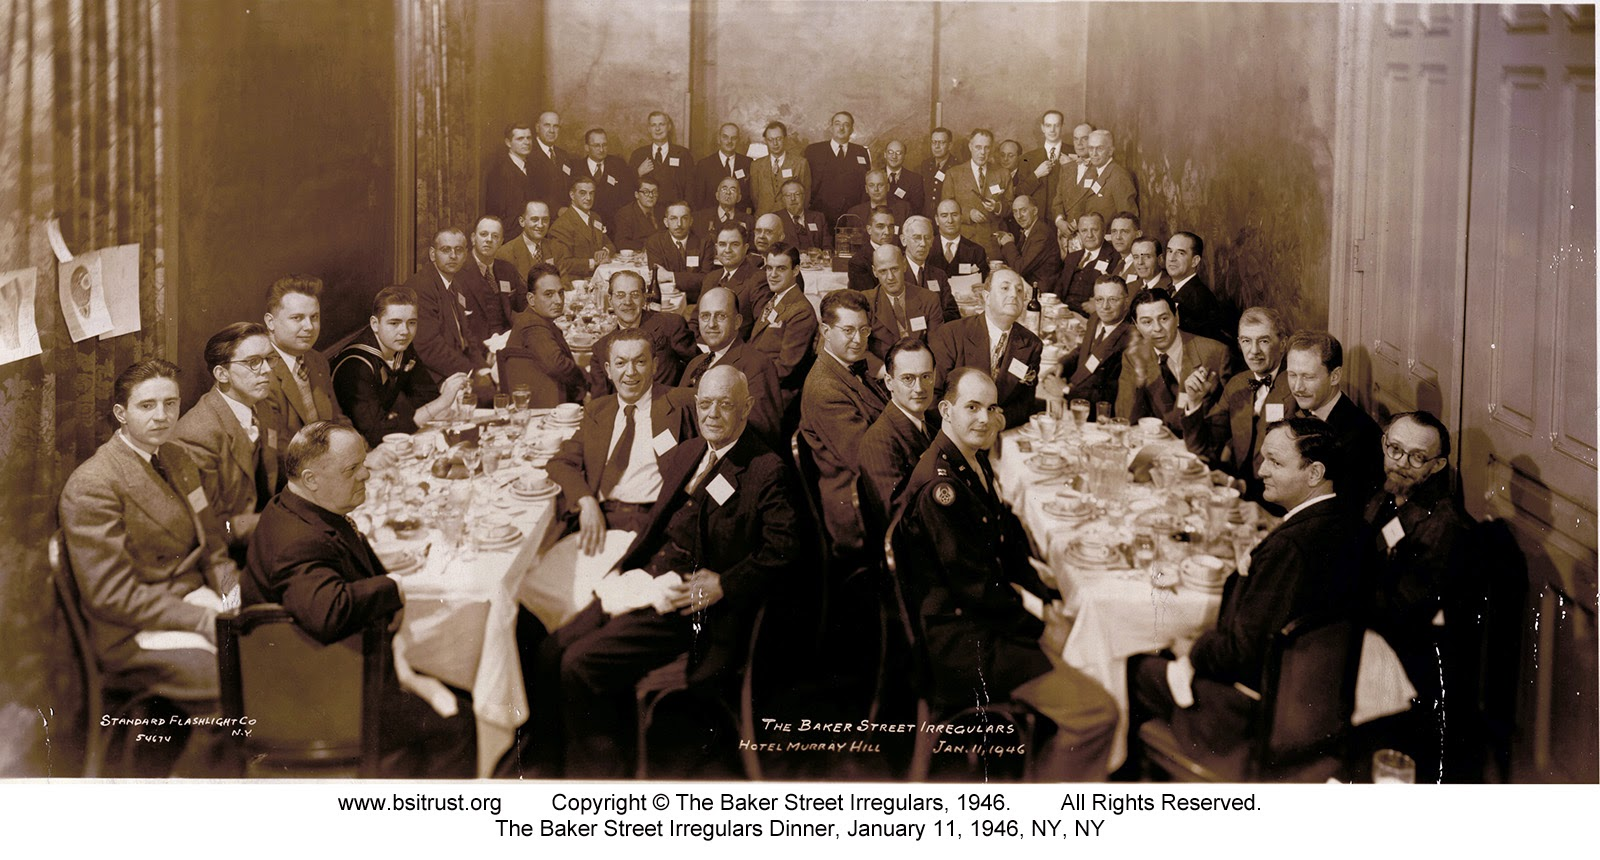 The 1946 BSI Dinner group photo